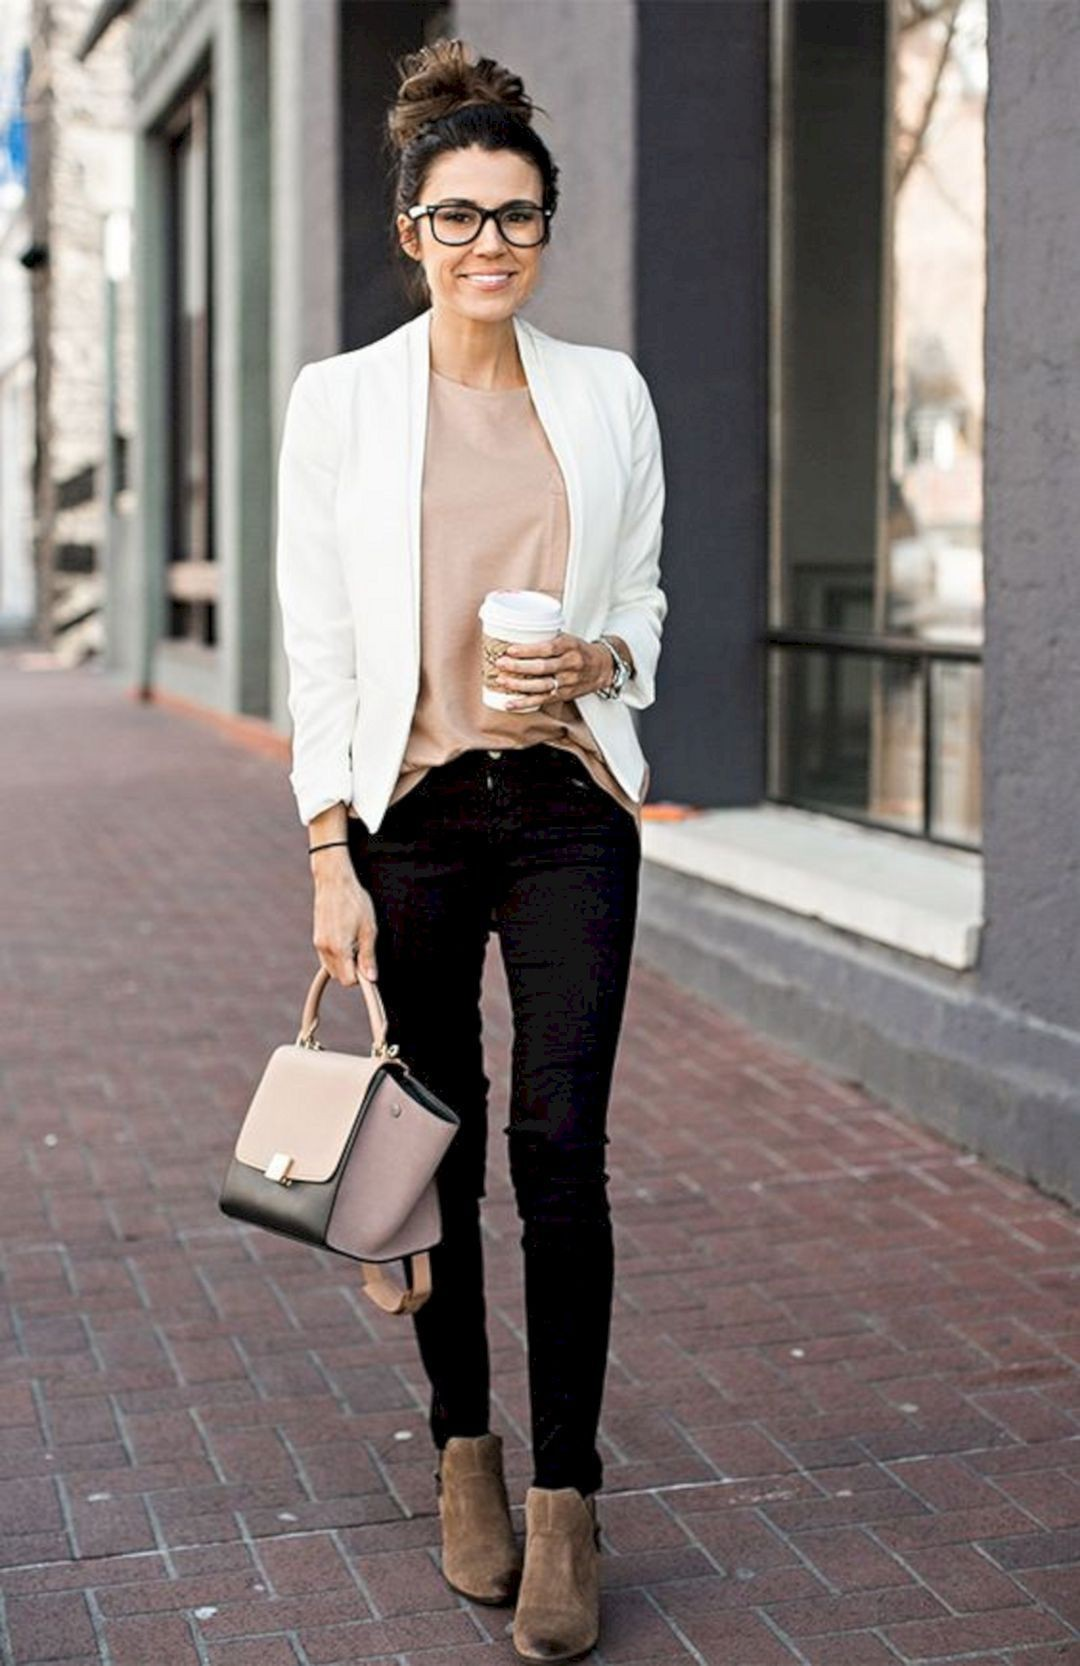 Business casual women outfits, business casual, street fashion, informal wear, smart casual, for ...